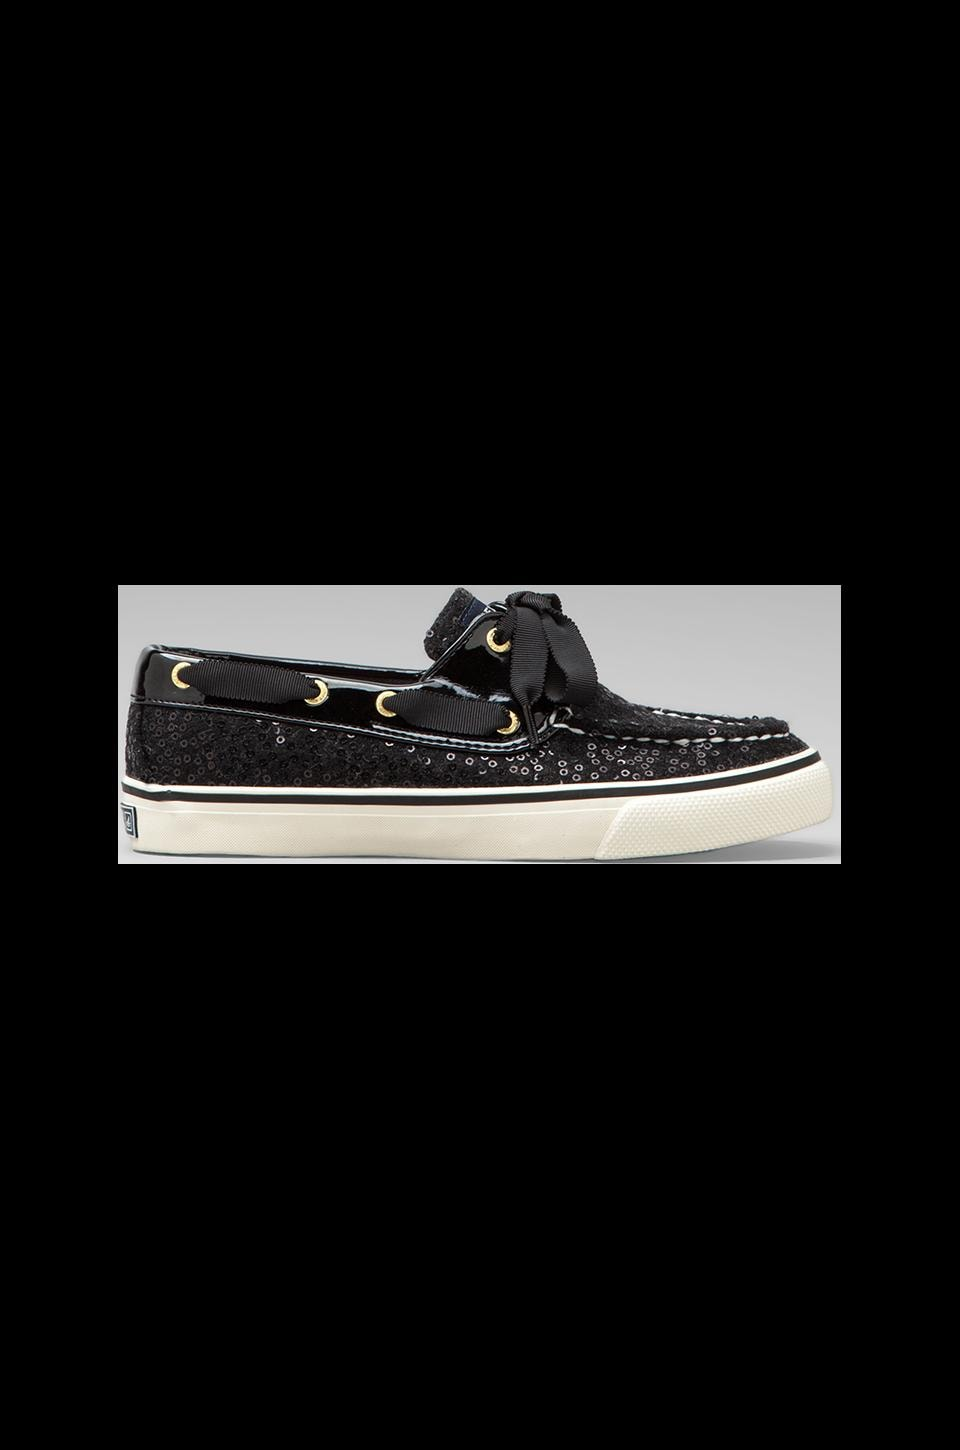 Sperry Top-Sider Bahama 2-Eye in Black Sequins